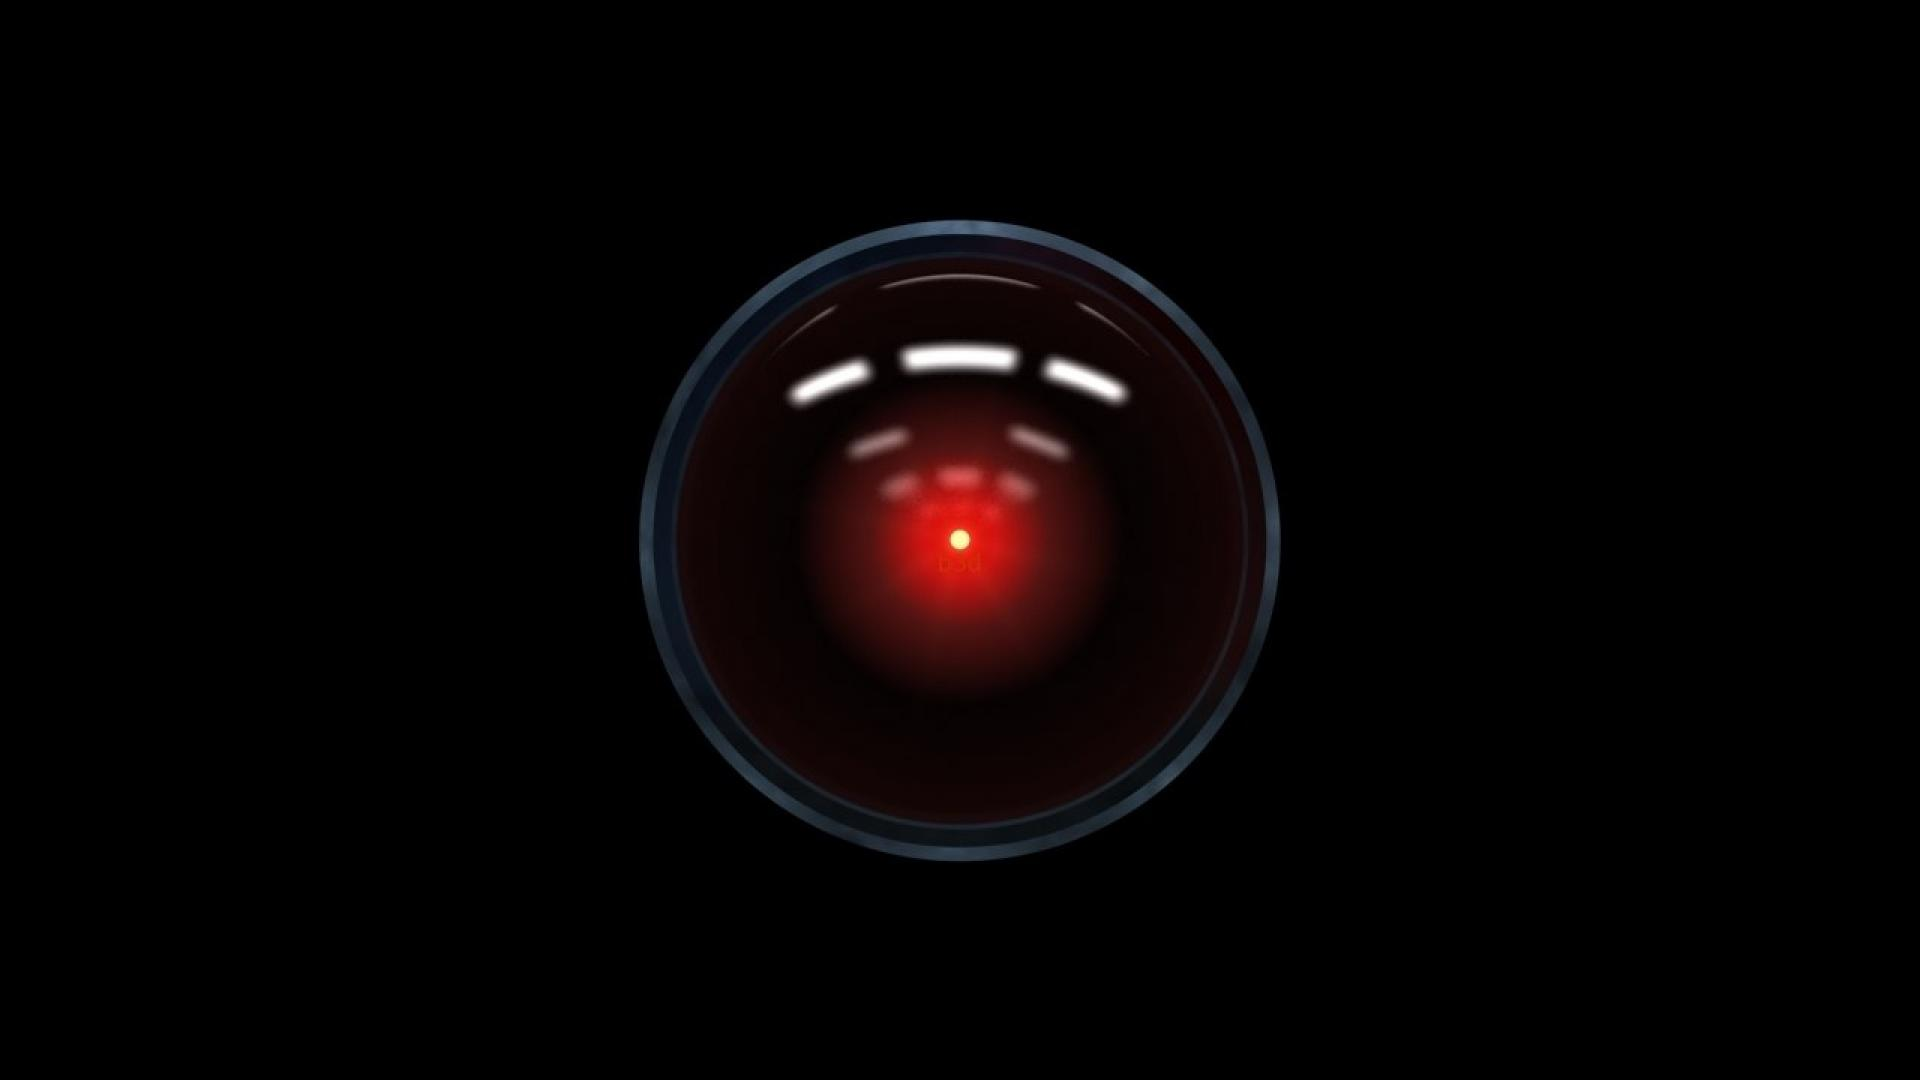 Free Download Movies 2001 Space Odyssey Hal 9000 Hd Wallpaper